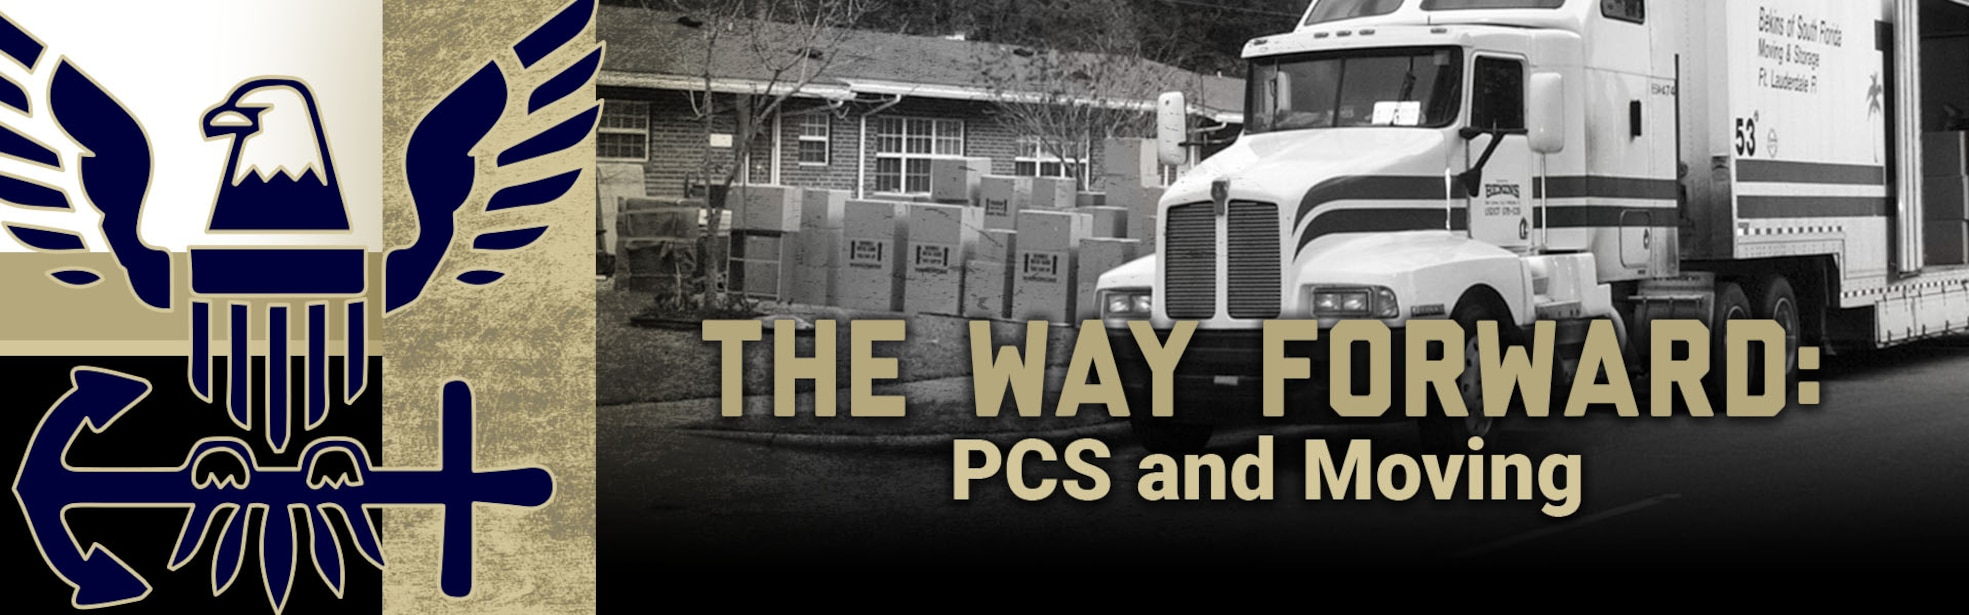 Banner showing navy logo and moving truck in black and white with titled The Way Forward: PCS and Moving